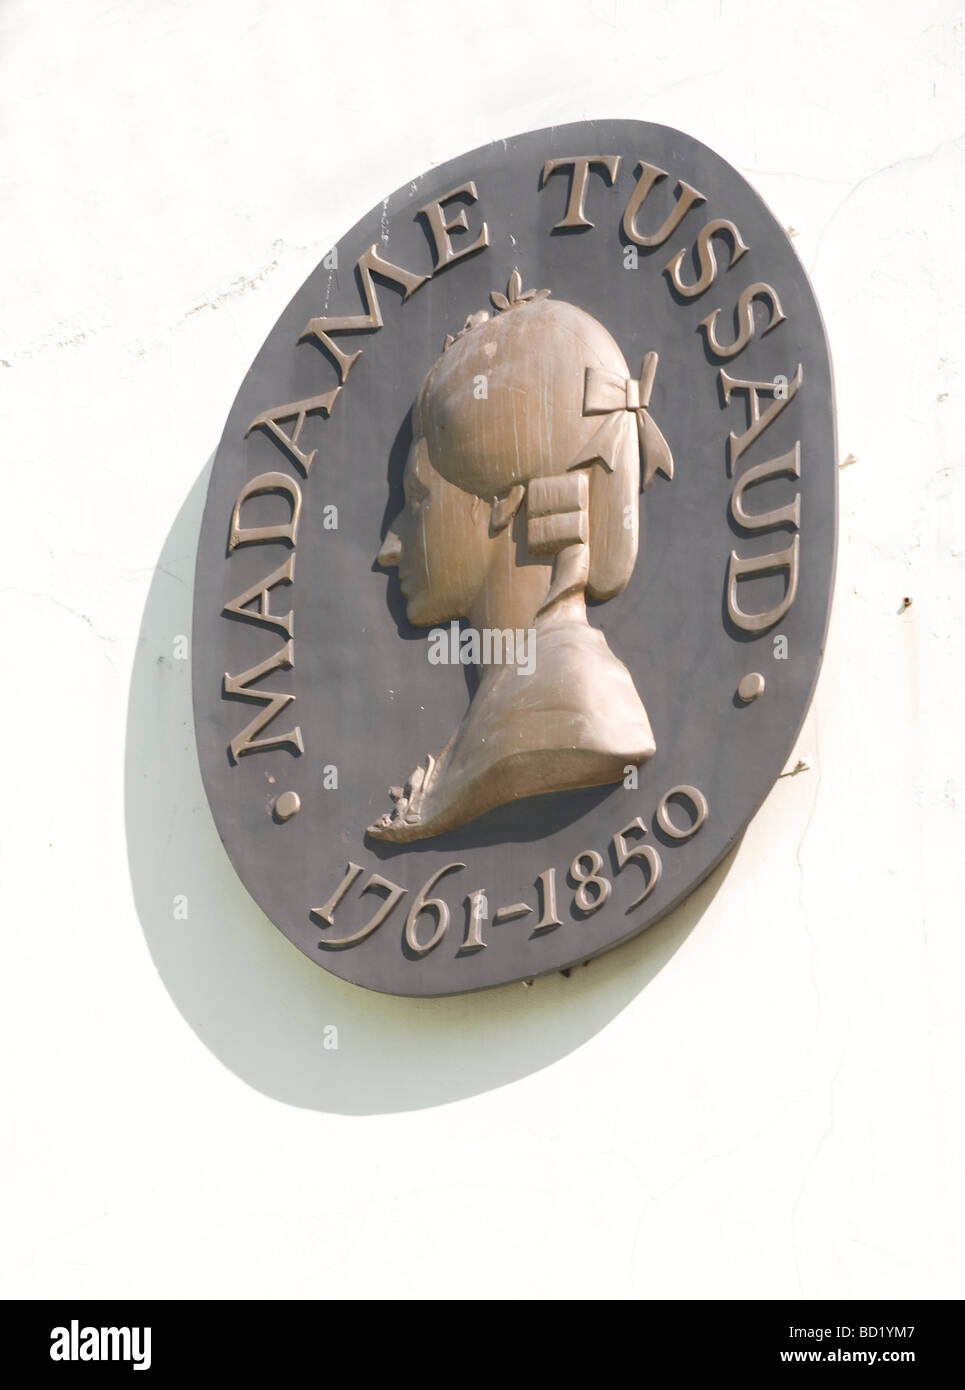 Madame Tussaud's, London showing close up of plaque commerating Madame Tussaud 1761-1850 - Stock Image